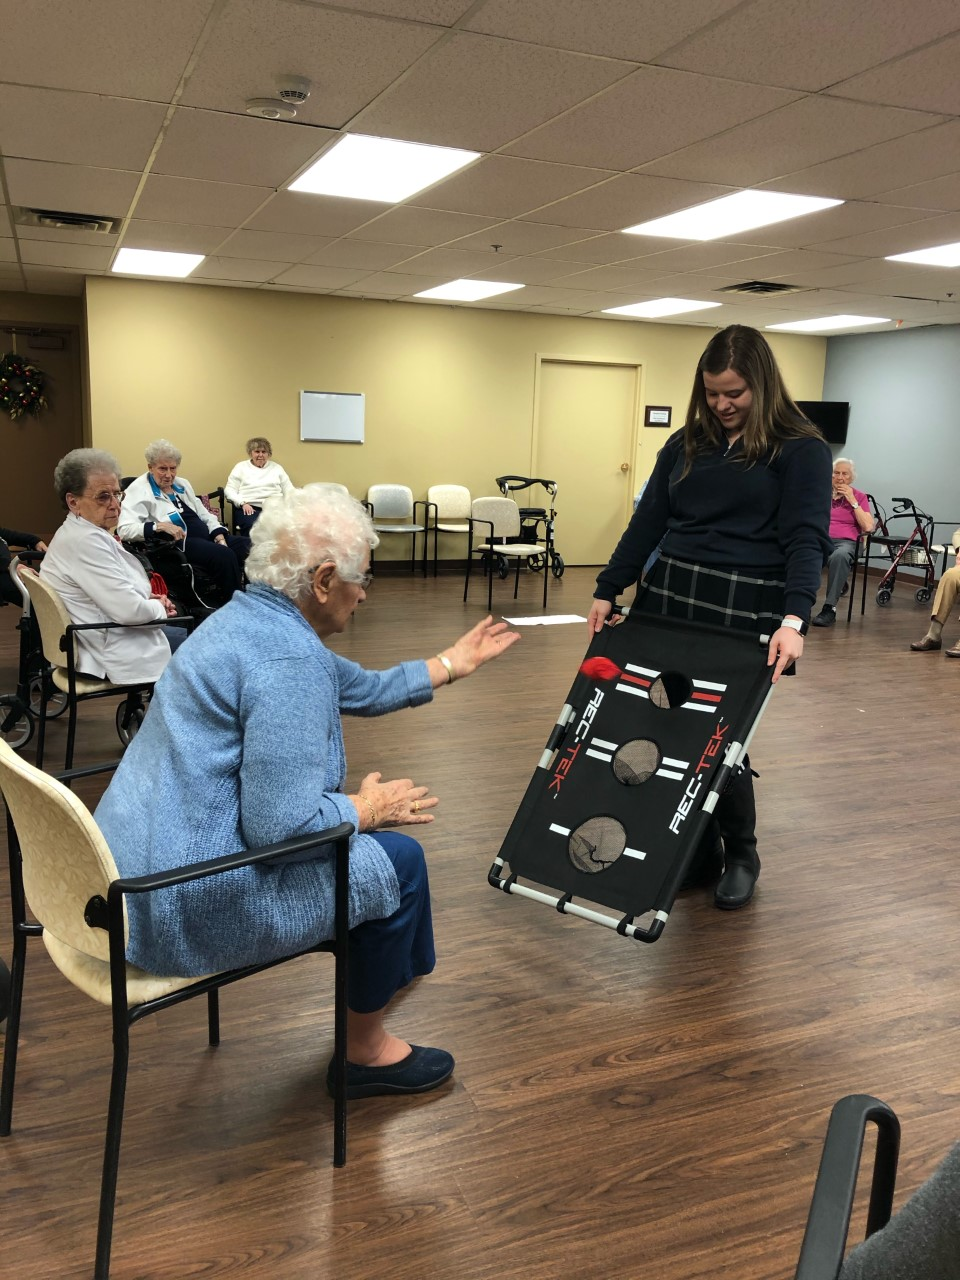 Female student working with elderly patients in a retirement home.